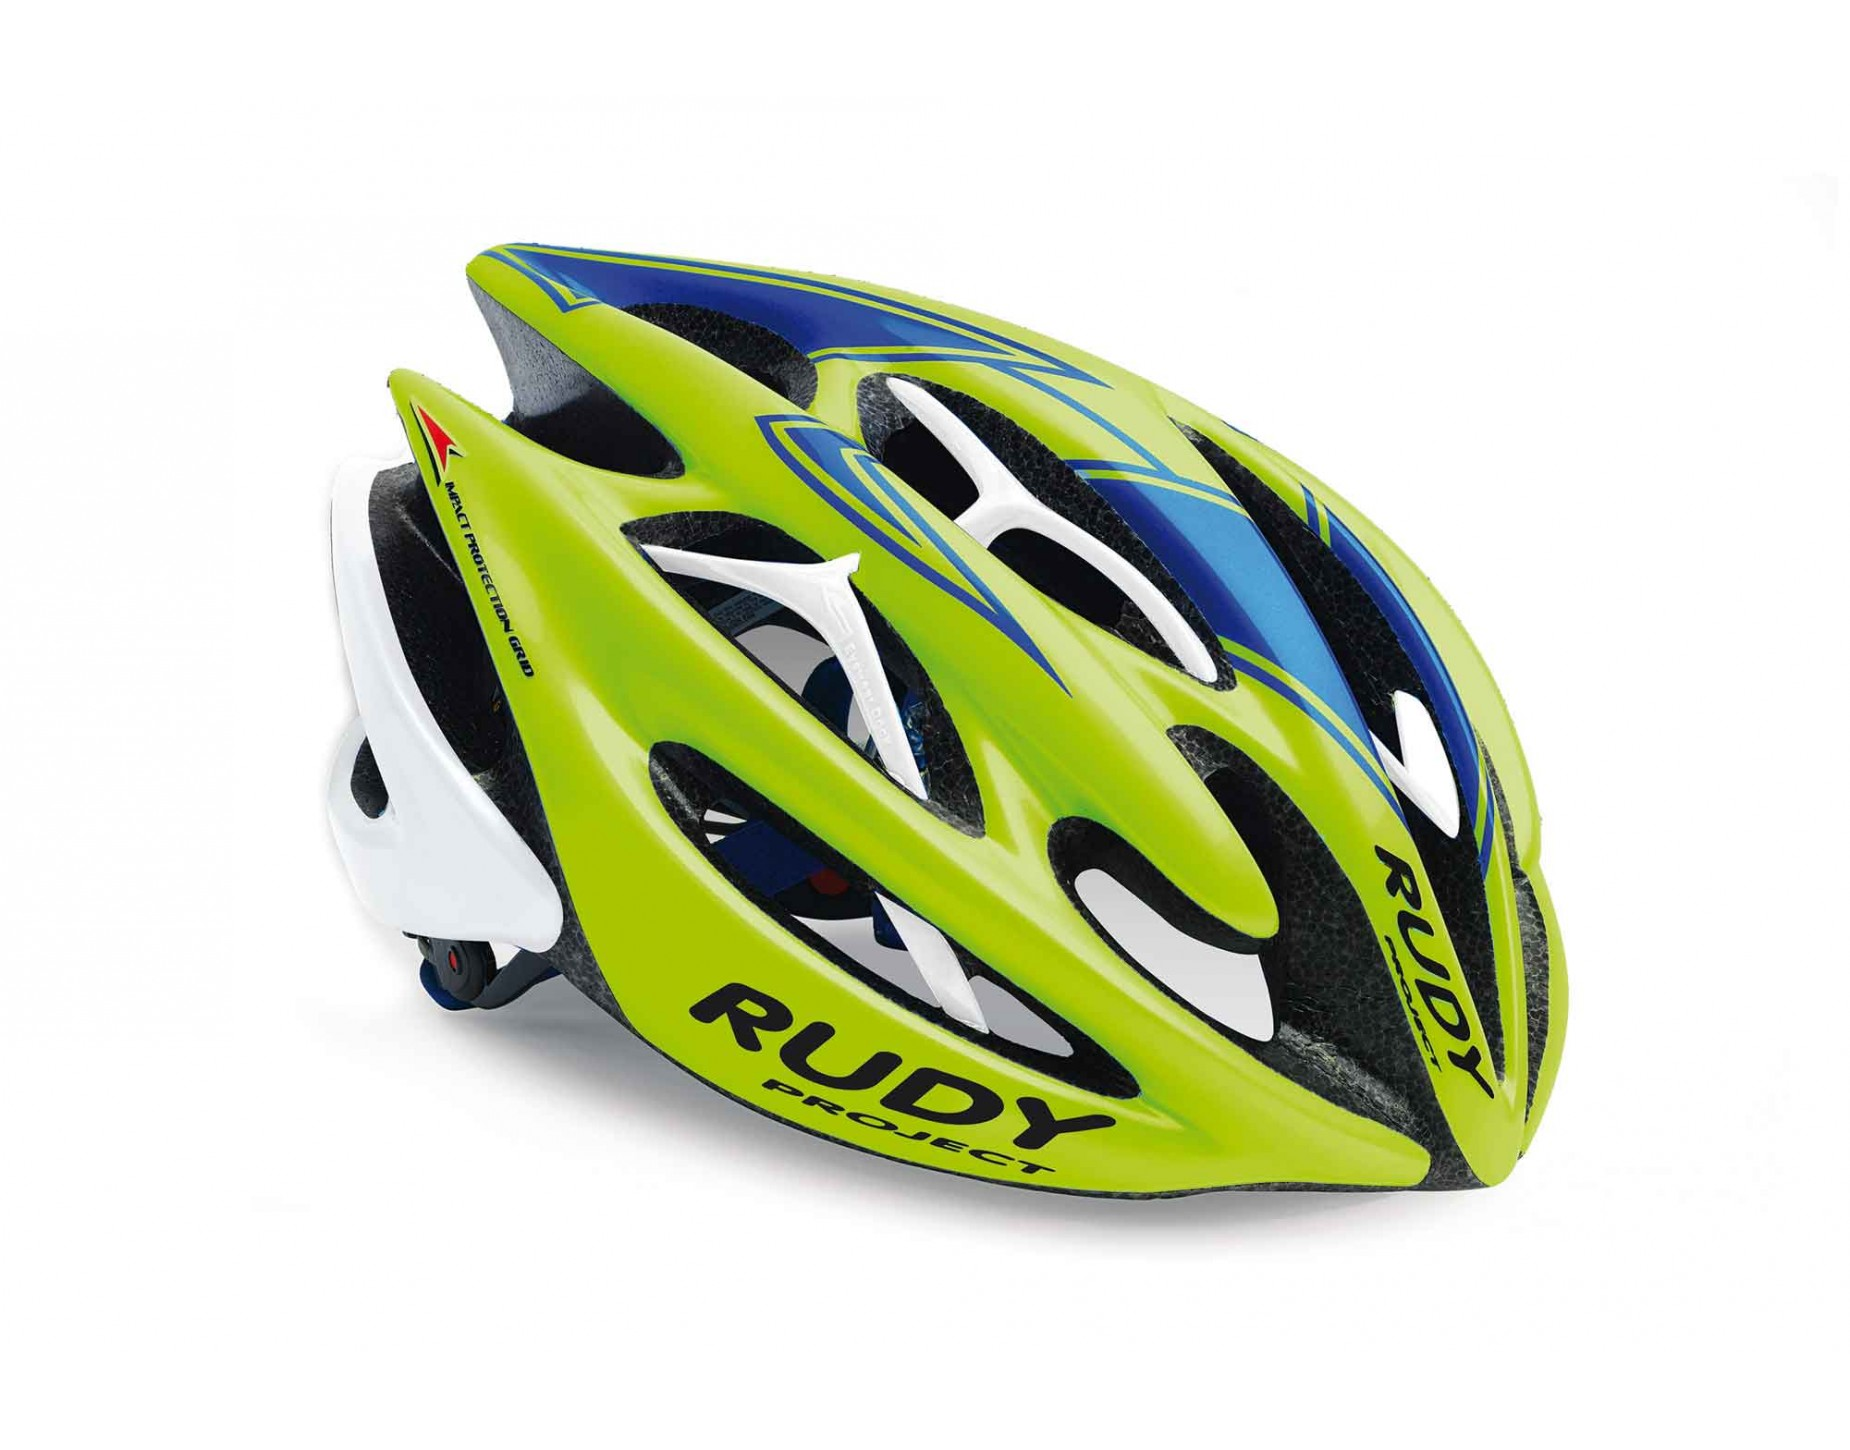 rudy project helmets Rudy project helmets: unparalleled players in cycling, triathlon and inline skatingit's been confirmed: once again this year, rudy project is the official supplier.